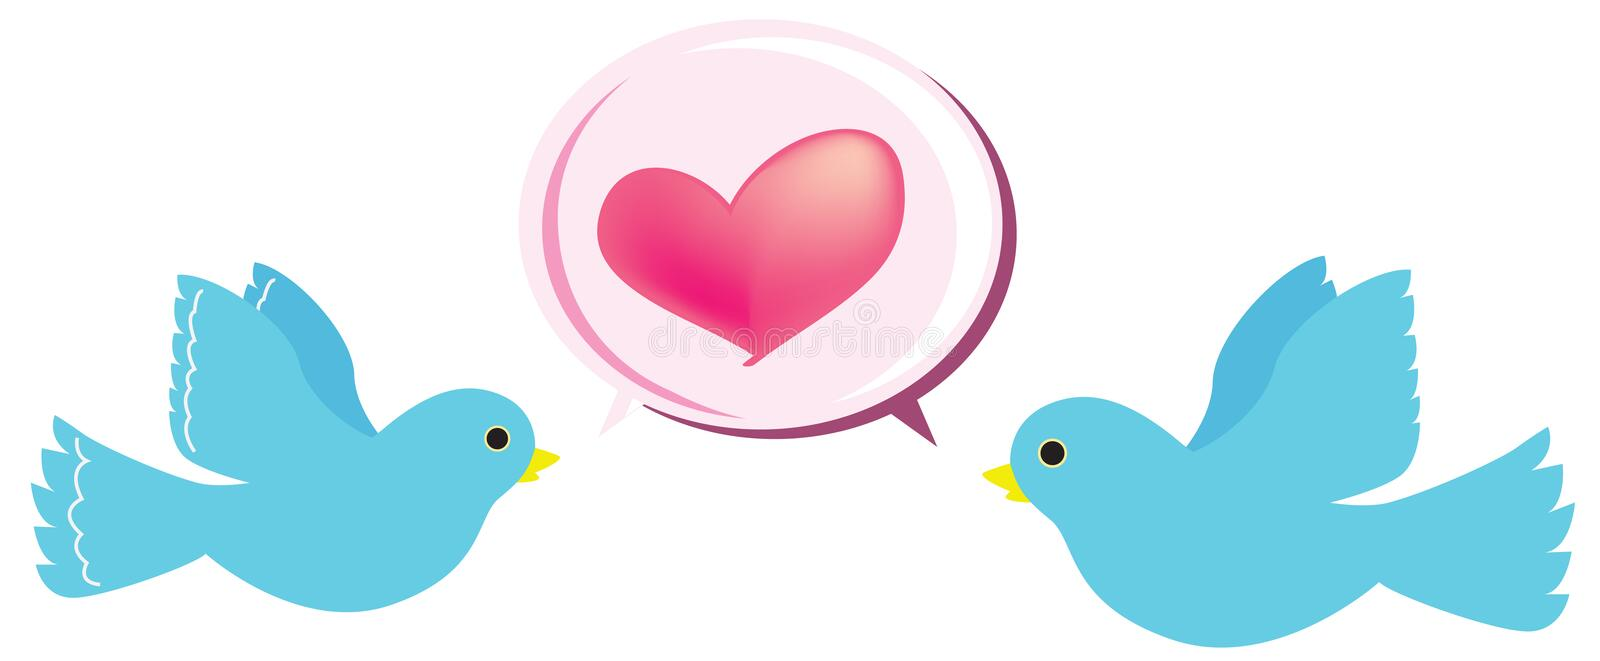 Love bird stock illustration